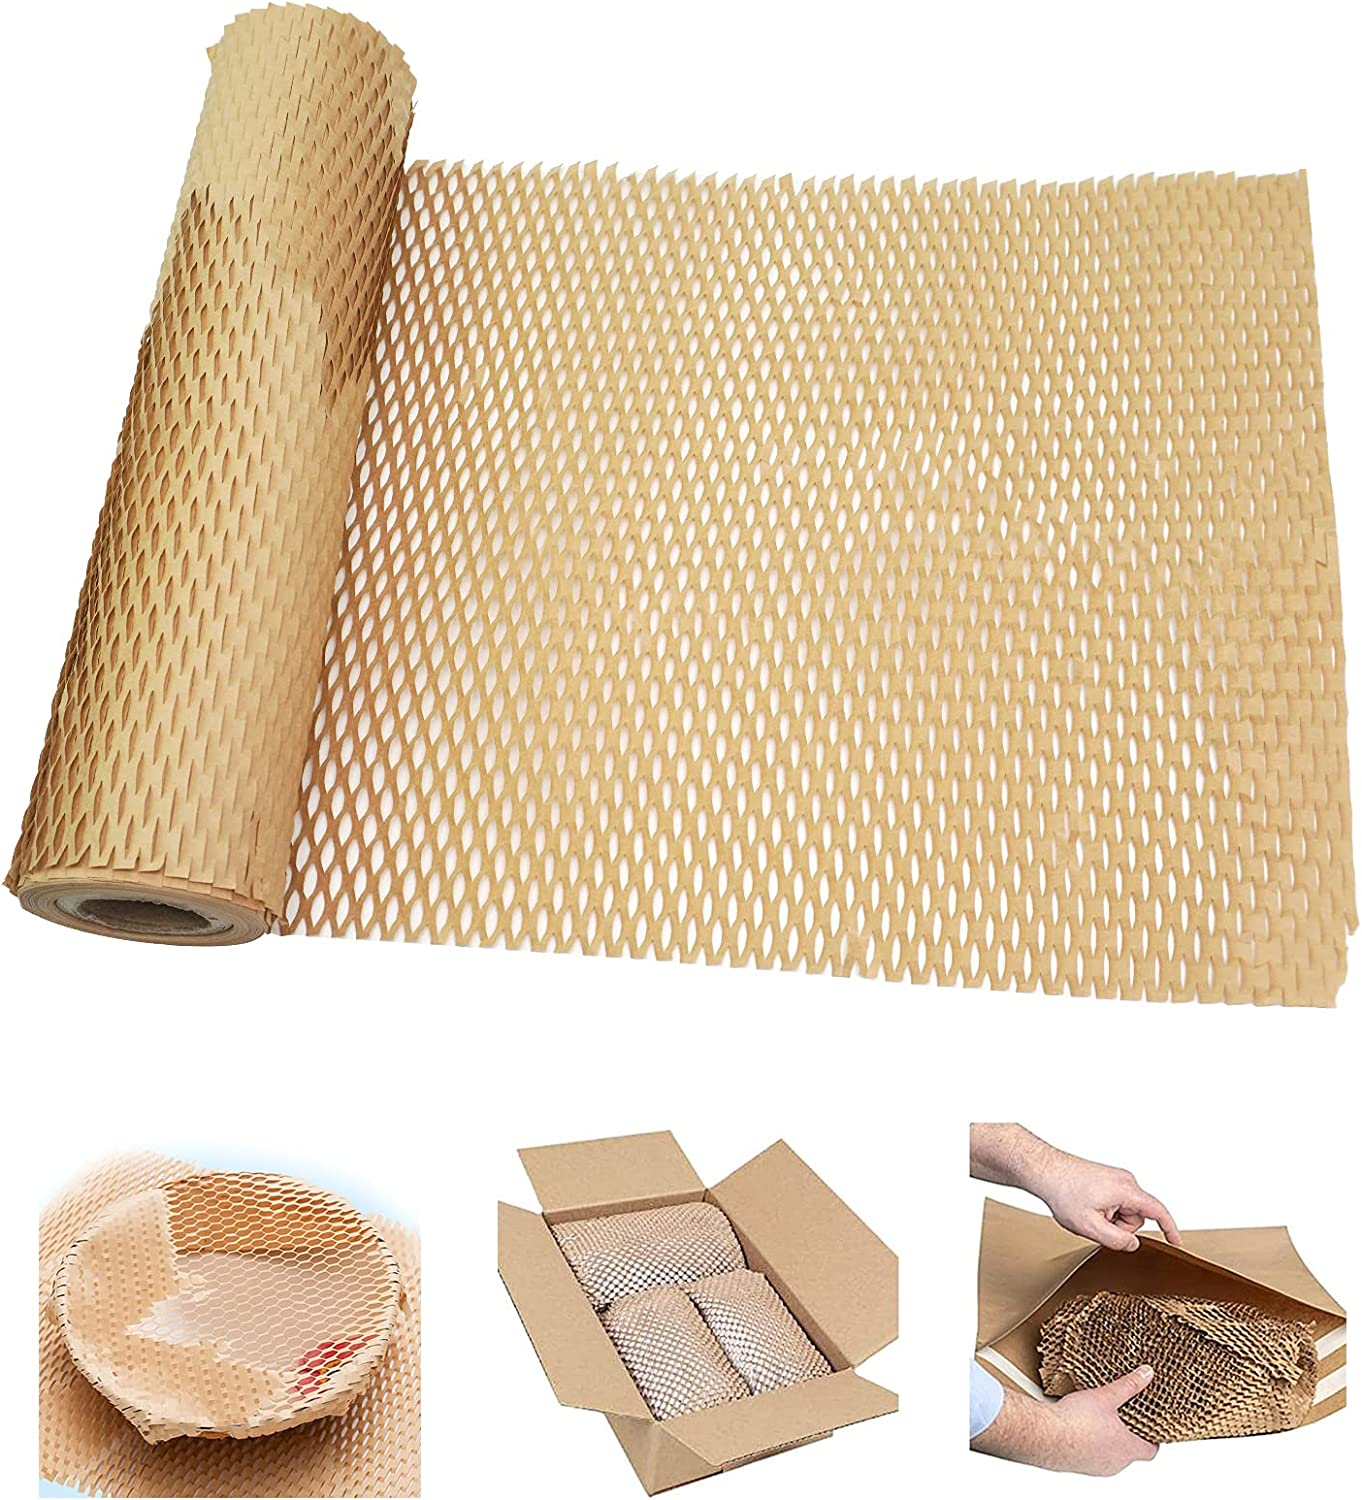 Isilila Premium Honeycomb Packing Paper 11.8inch X 50FT, Eco-friendly Honeycomb Cushioning Wrap Roll for Moving/shipping/packing, Biodegradable Honeycomb Packing Material Recyclable Kraft Paper : Office Products